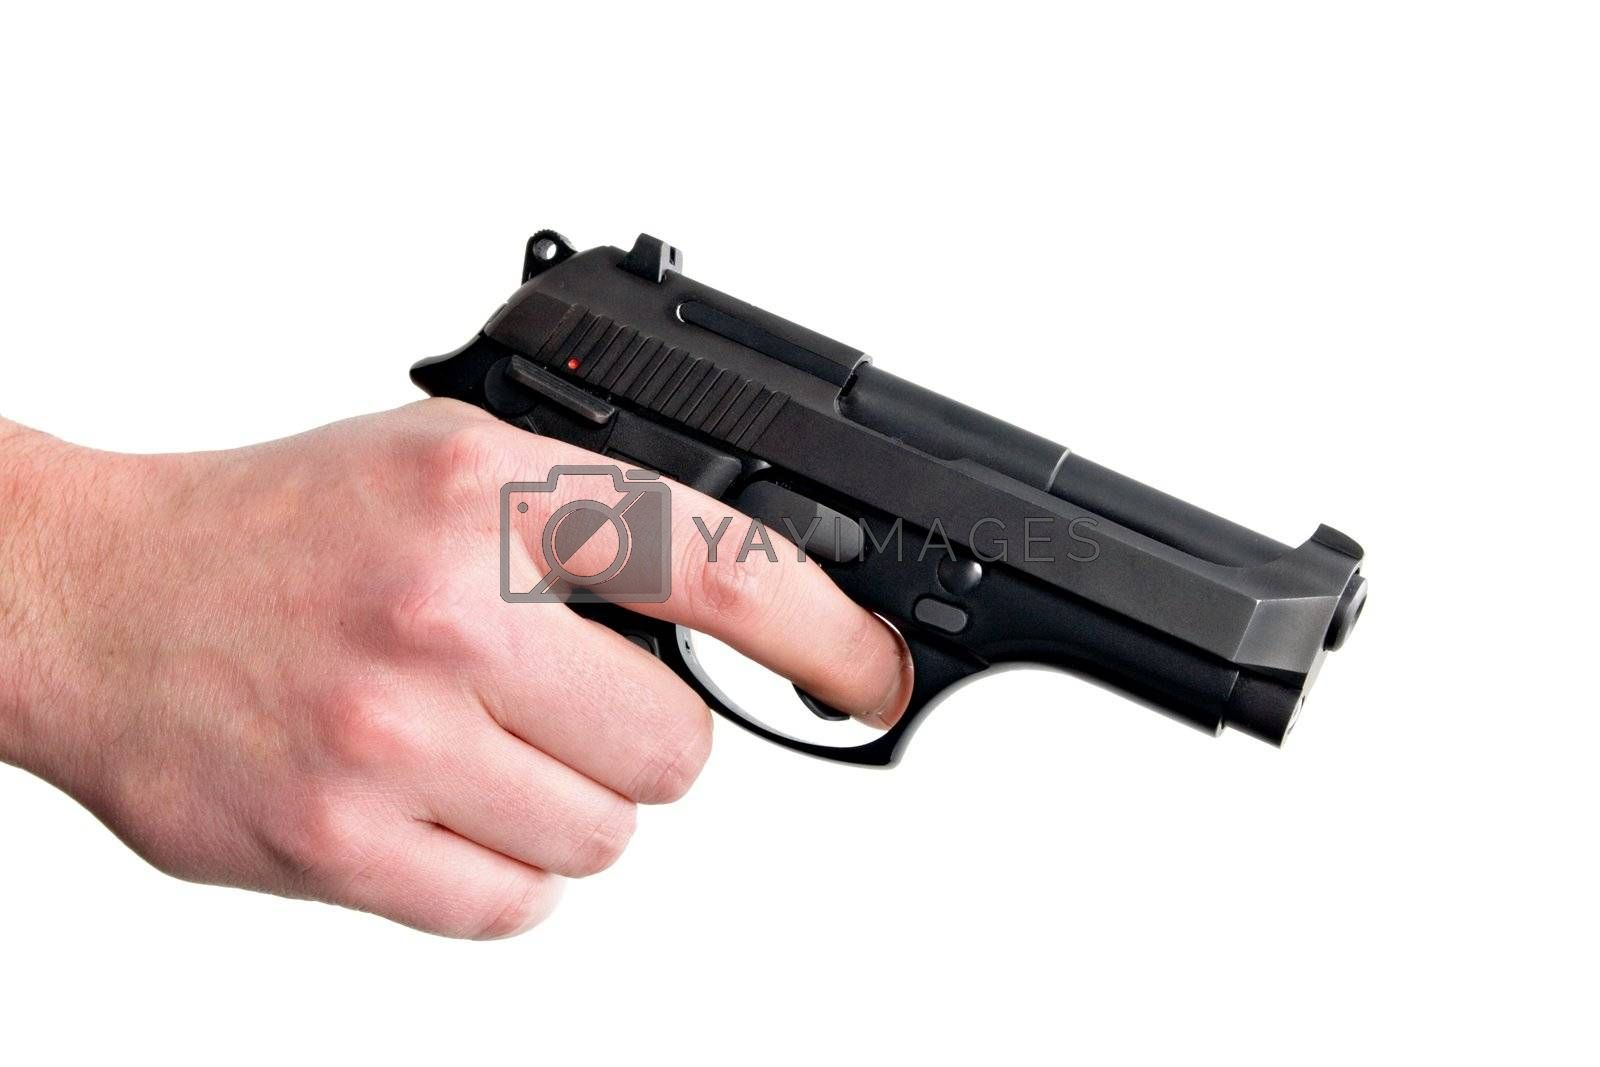 Hand holding gun. Isolated on white background.